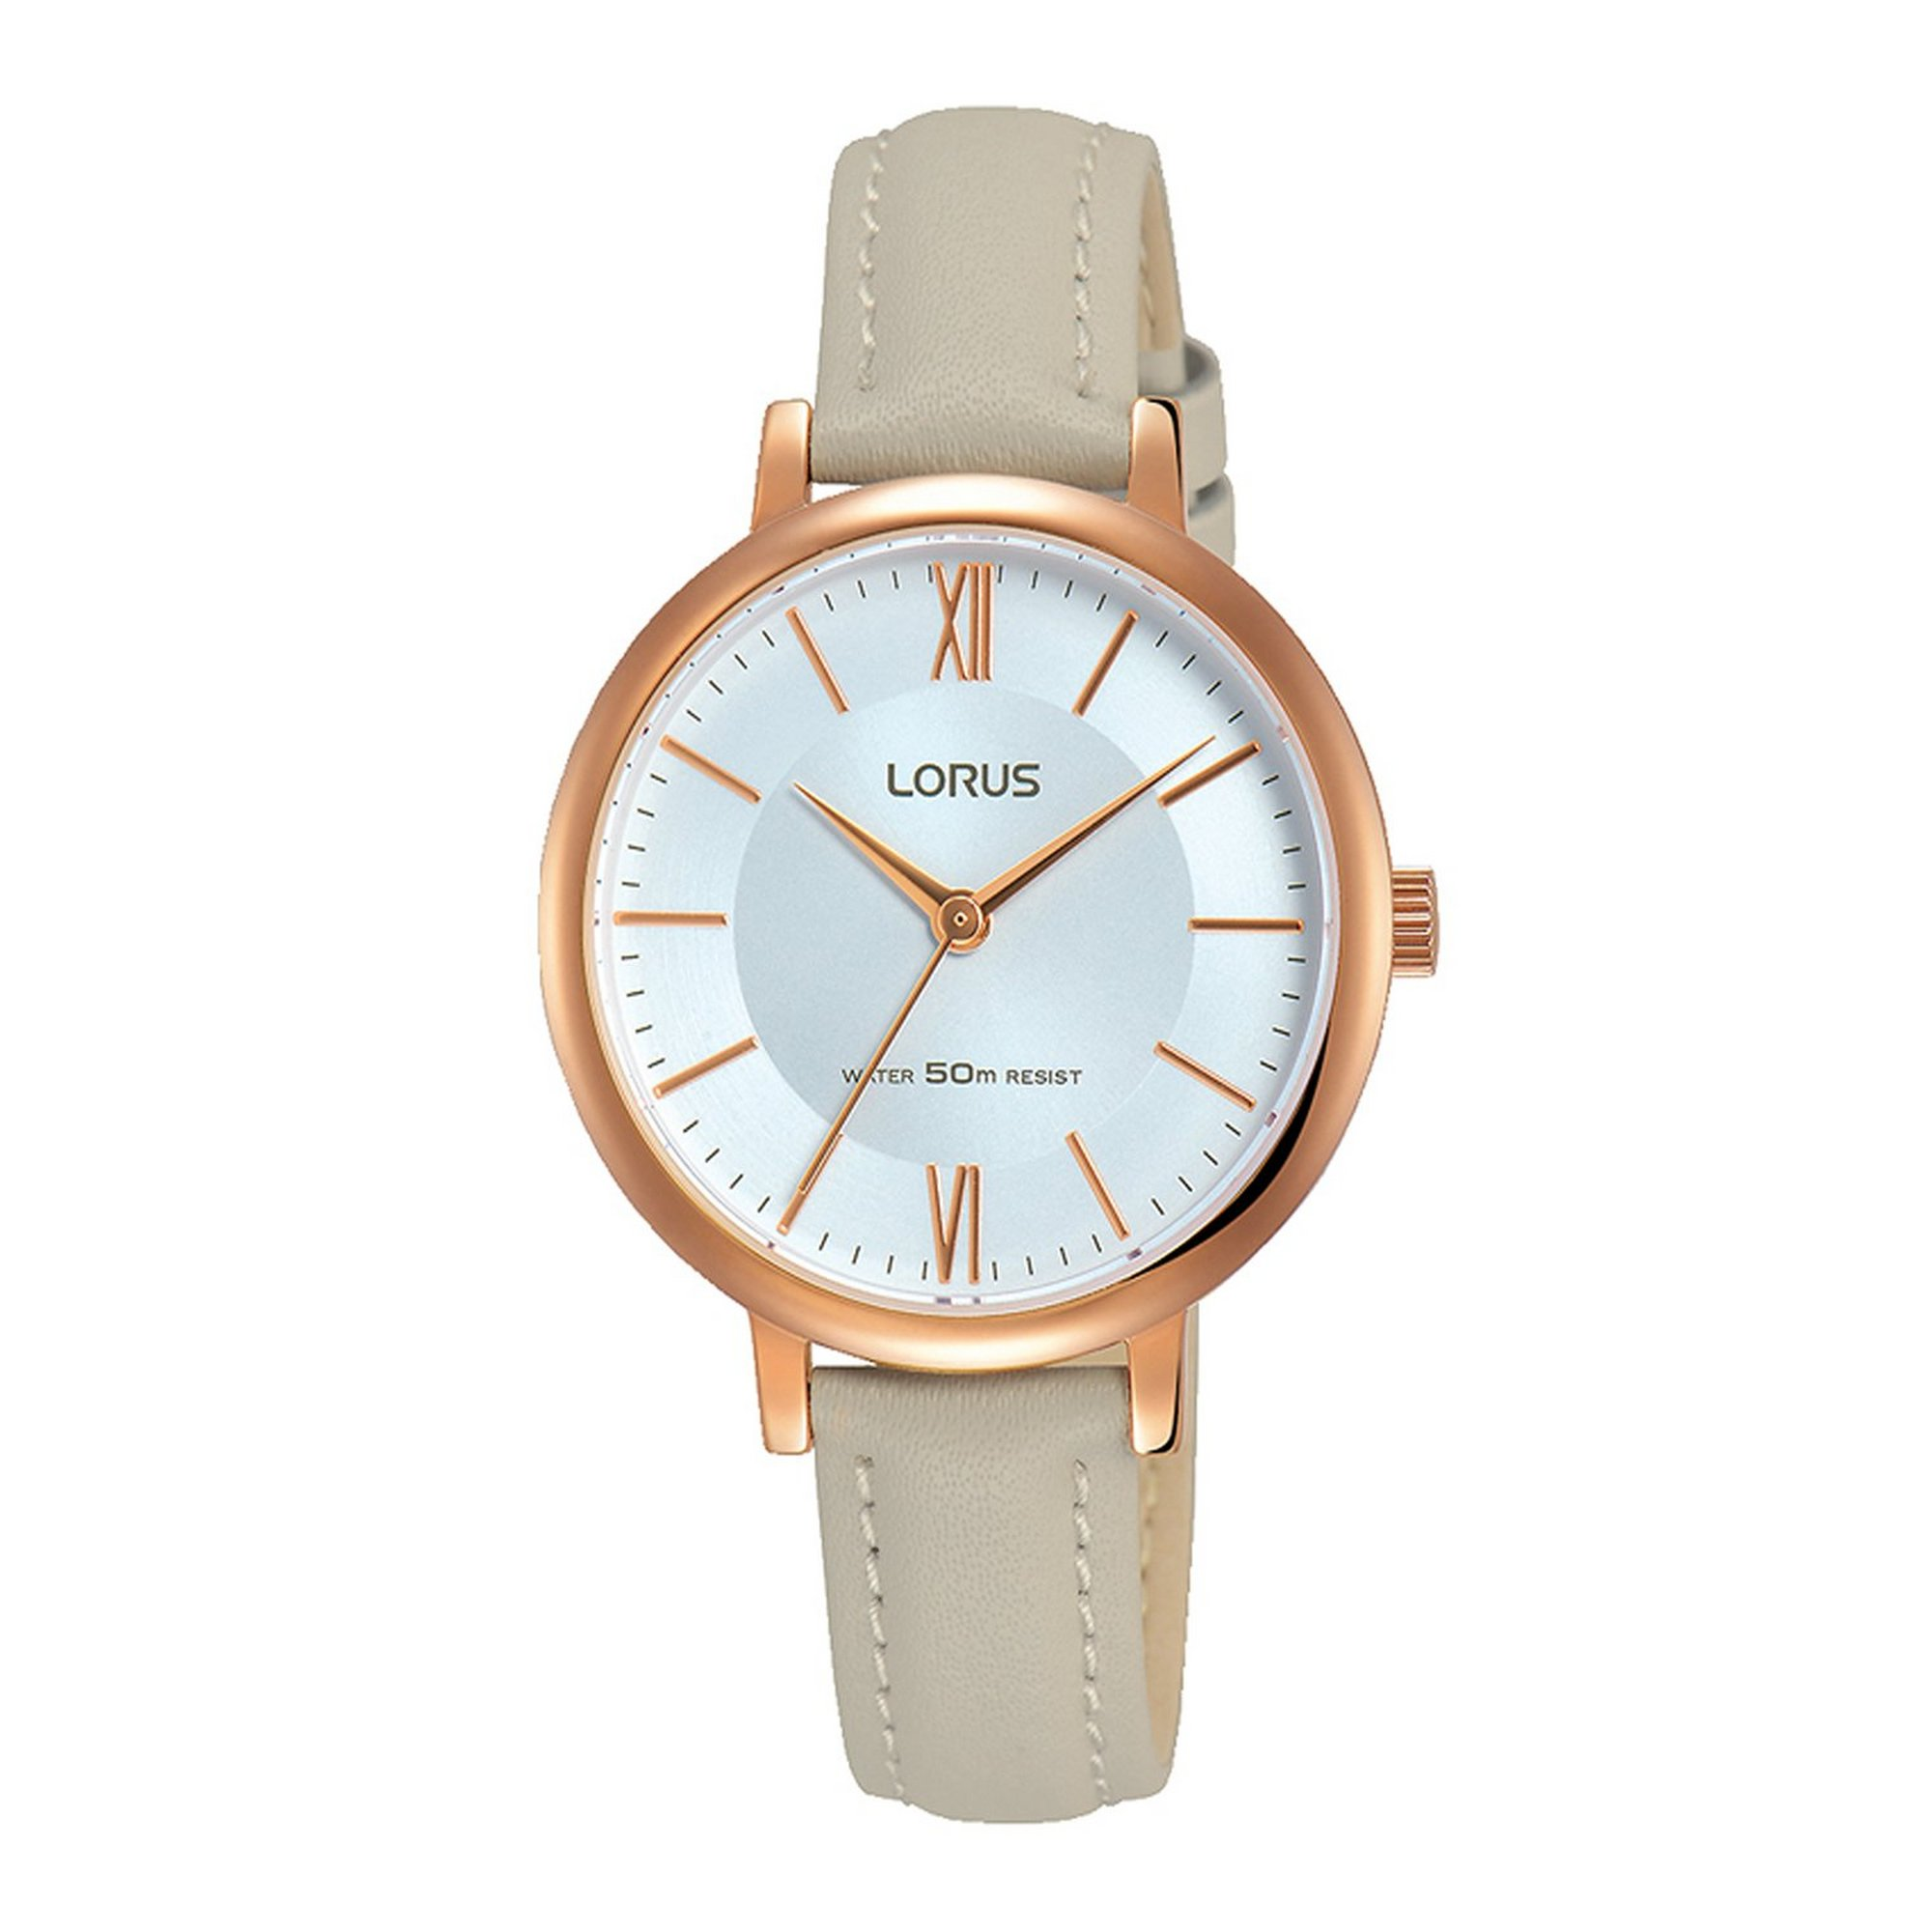 Image of Lorus Elegant Light Grey Leather Strap Watch with Rose Gold Plate...